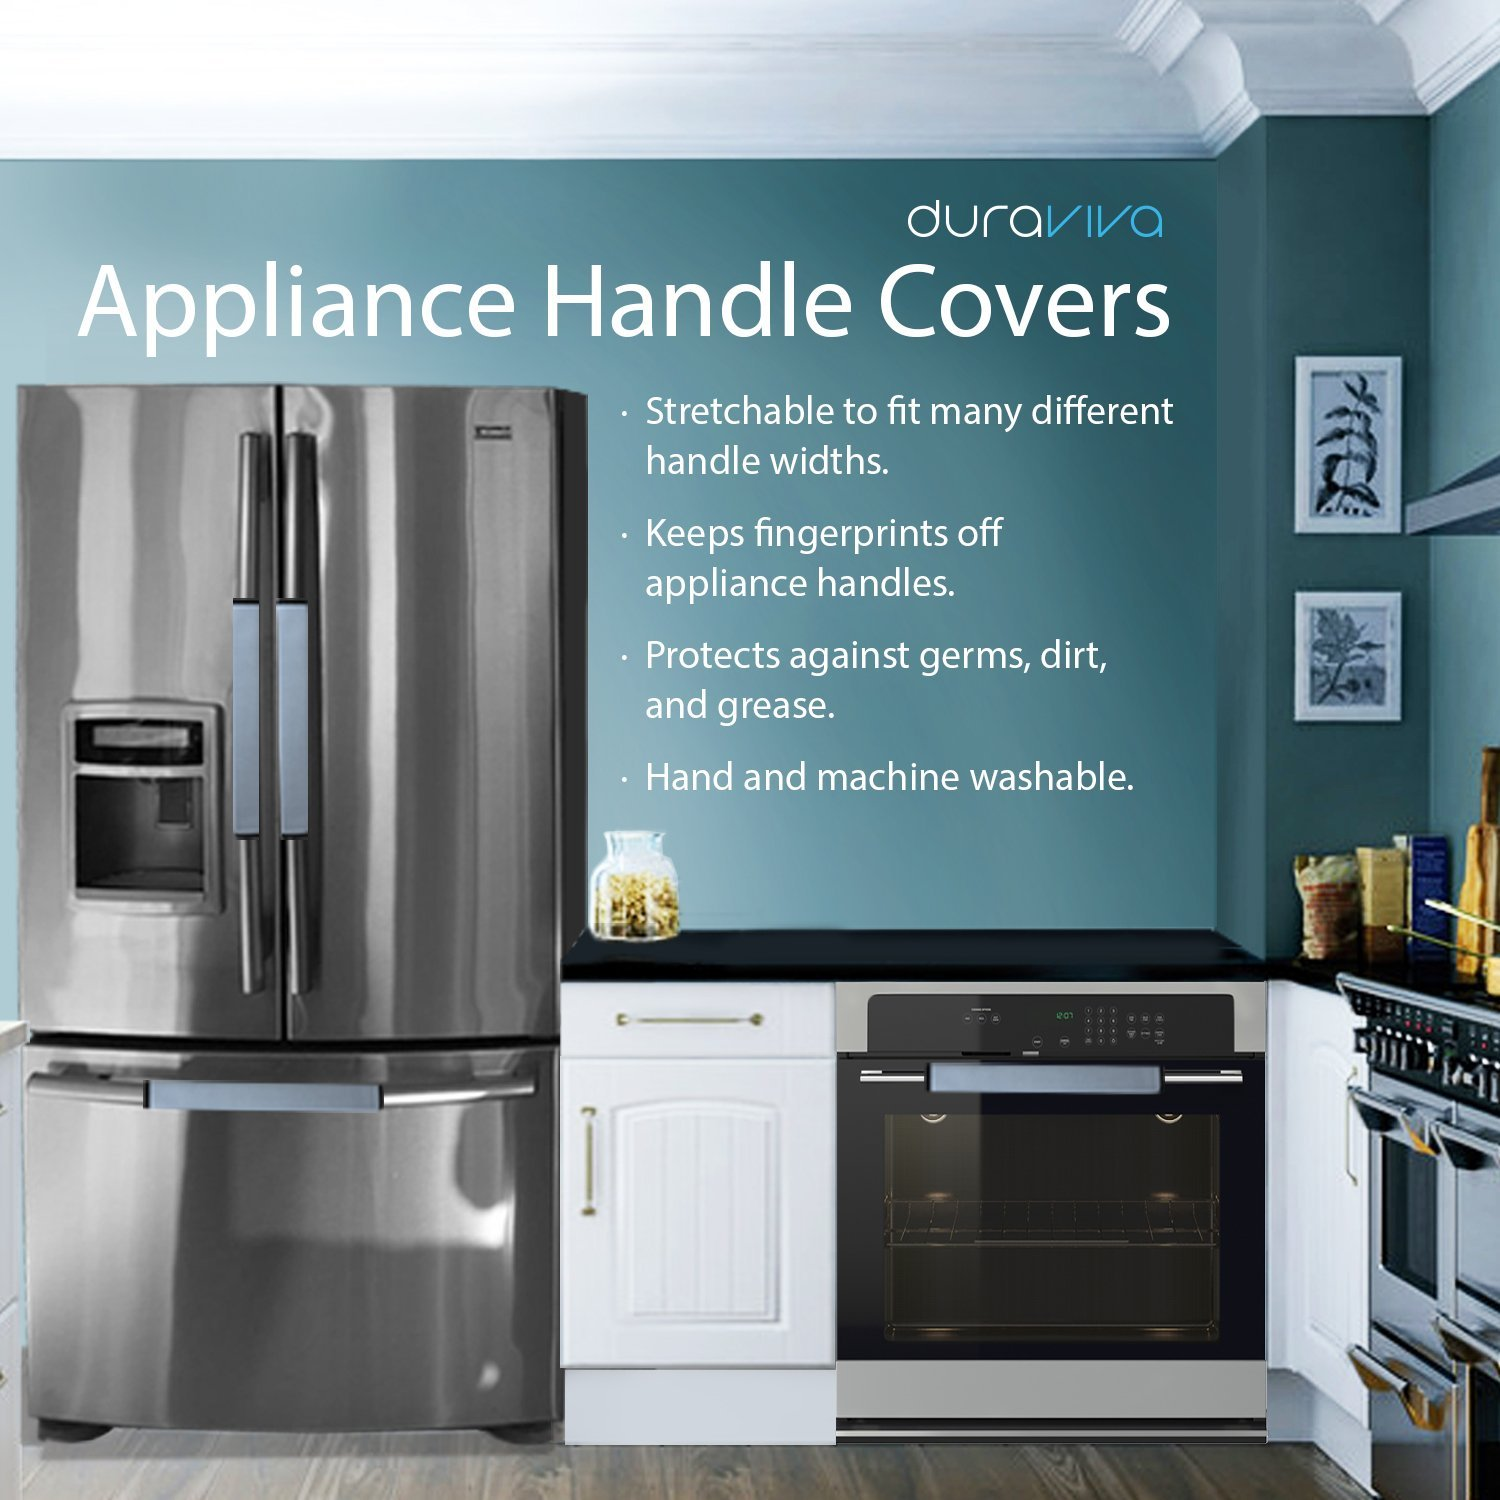 Duraviva Fridge Microwave Appliance Handle Covers - Walmart.com